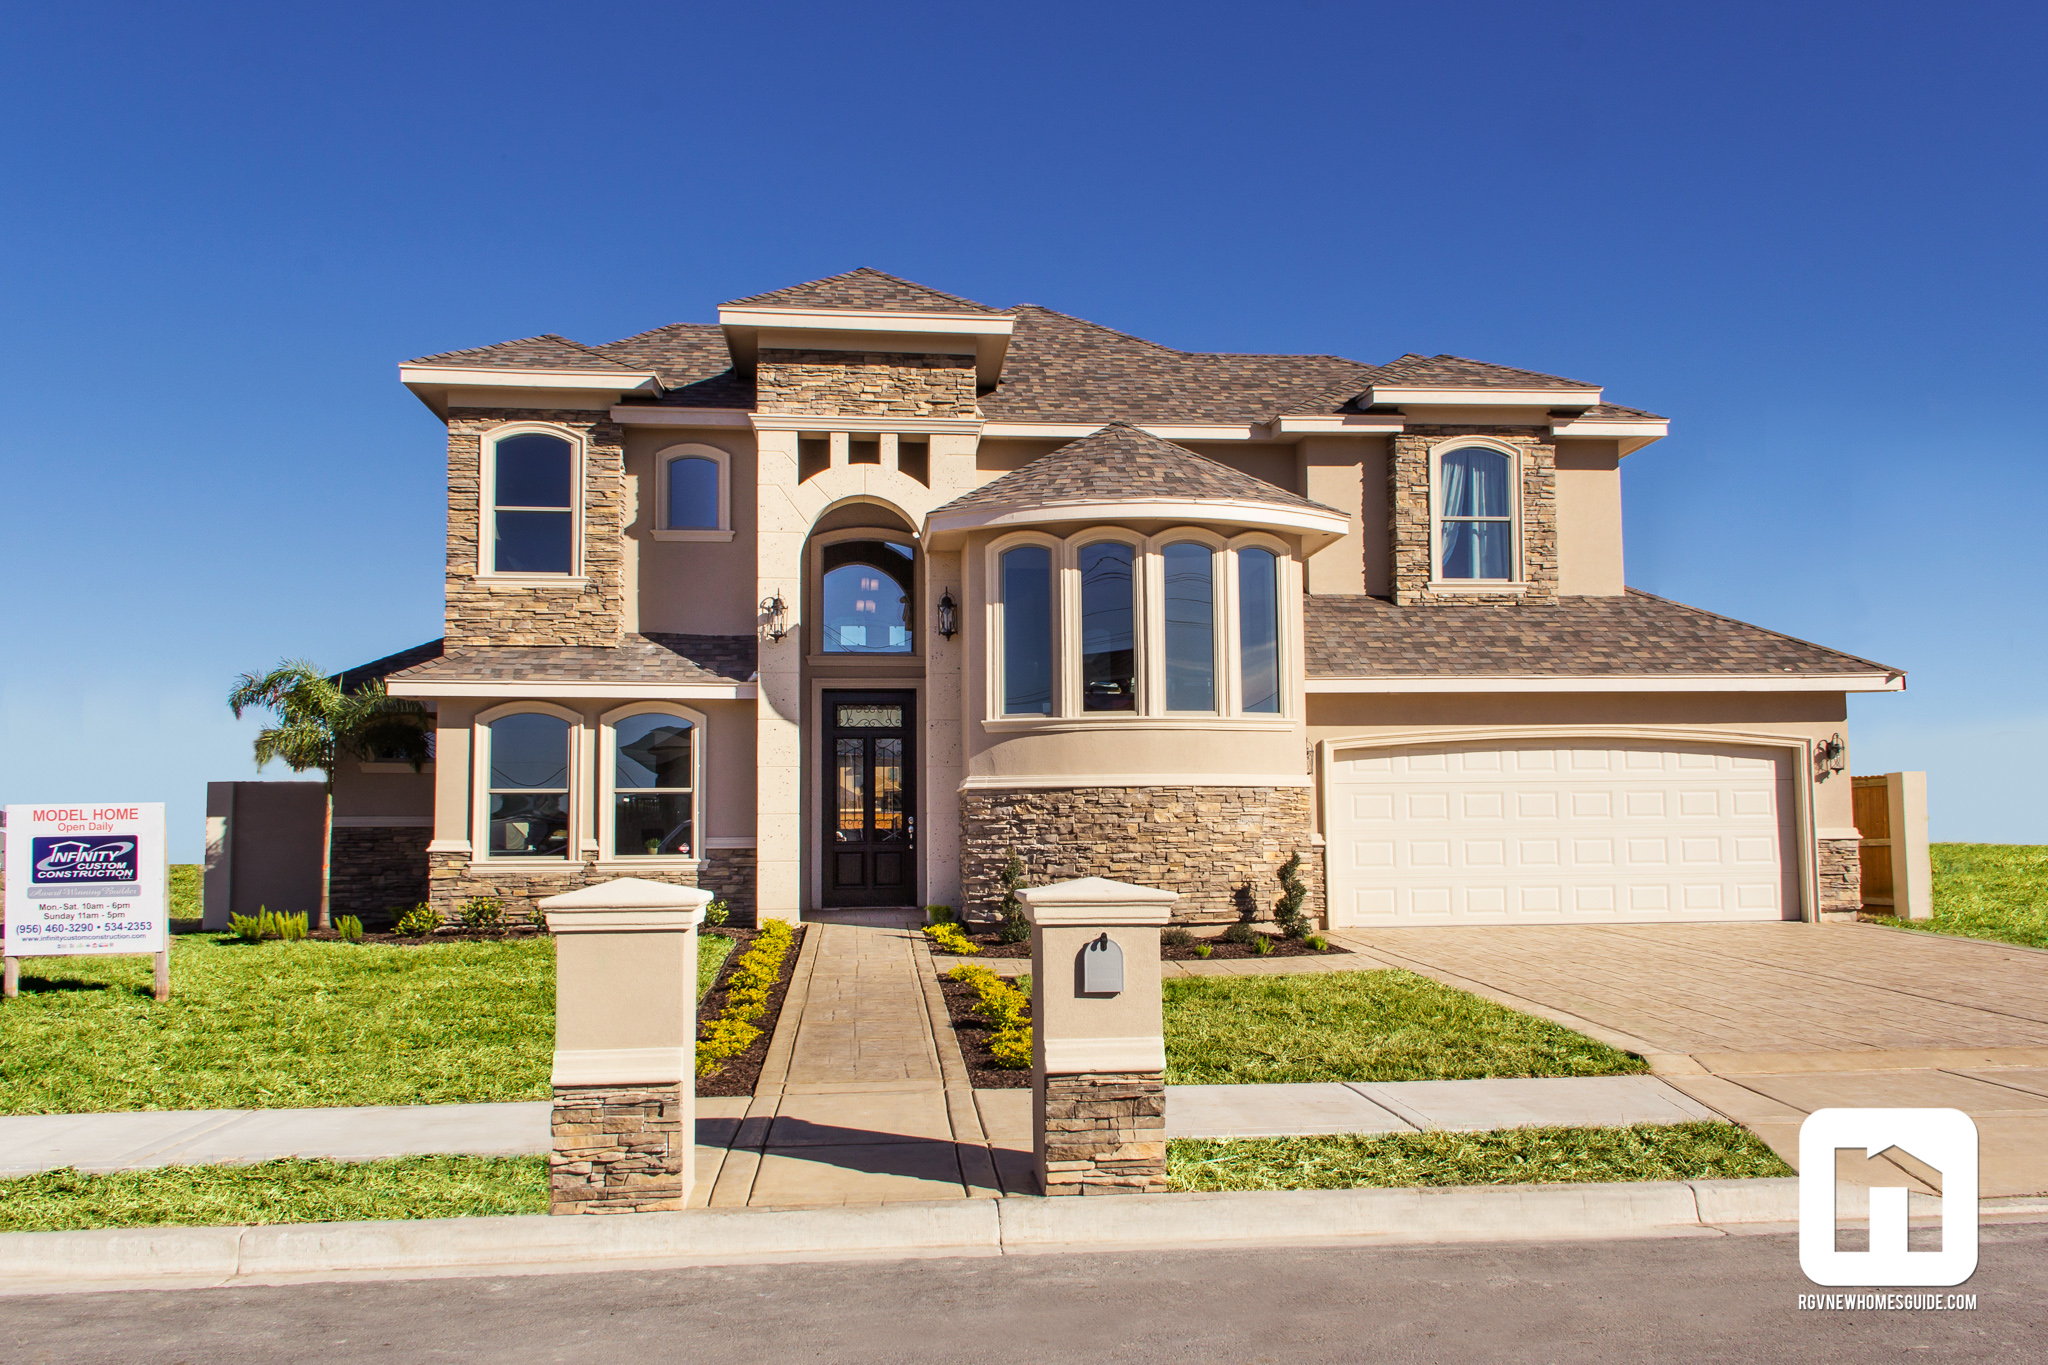 Infinity home builders mcallen tx avie home for Home builders guide